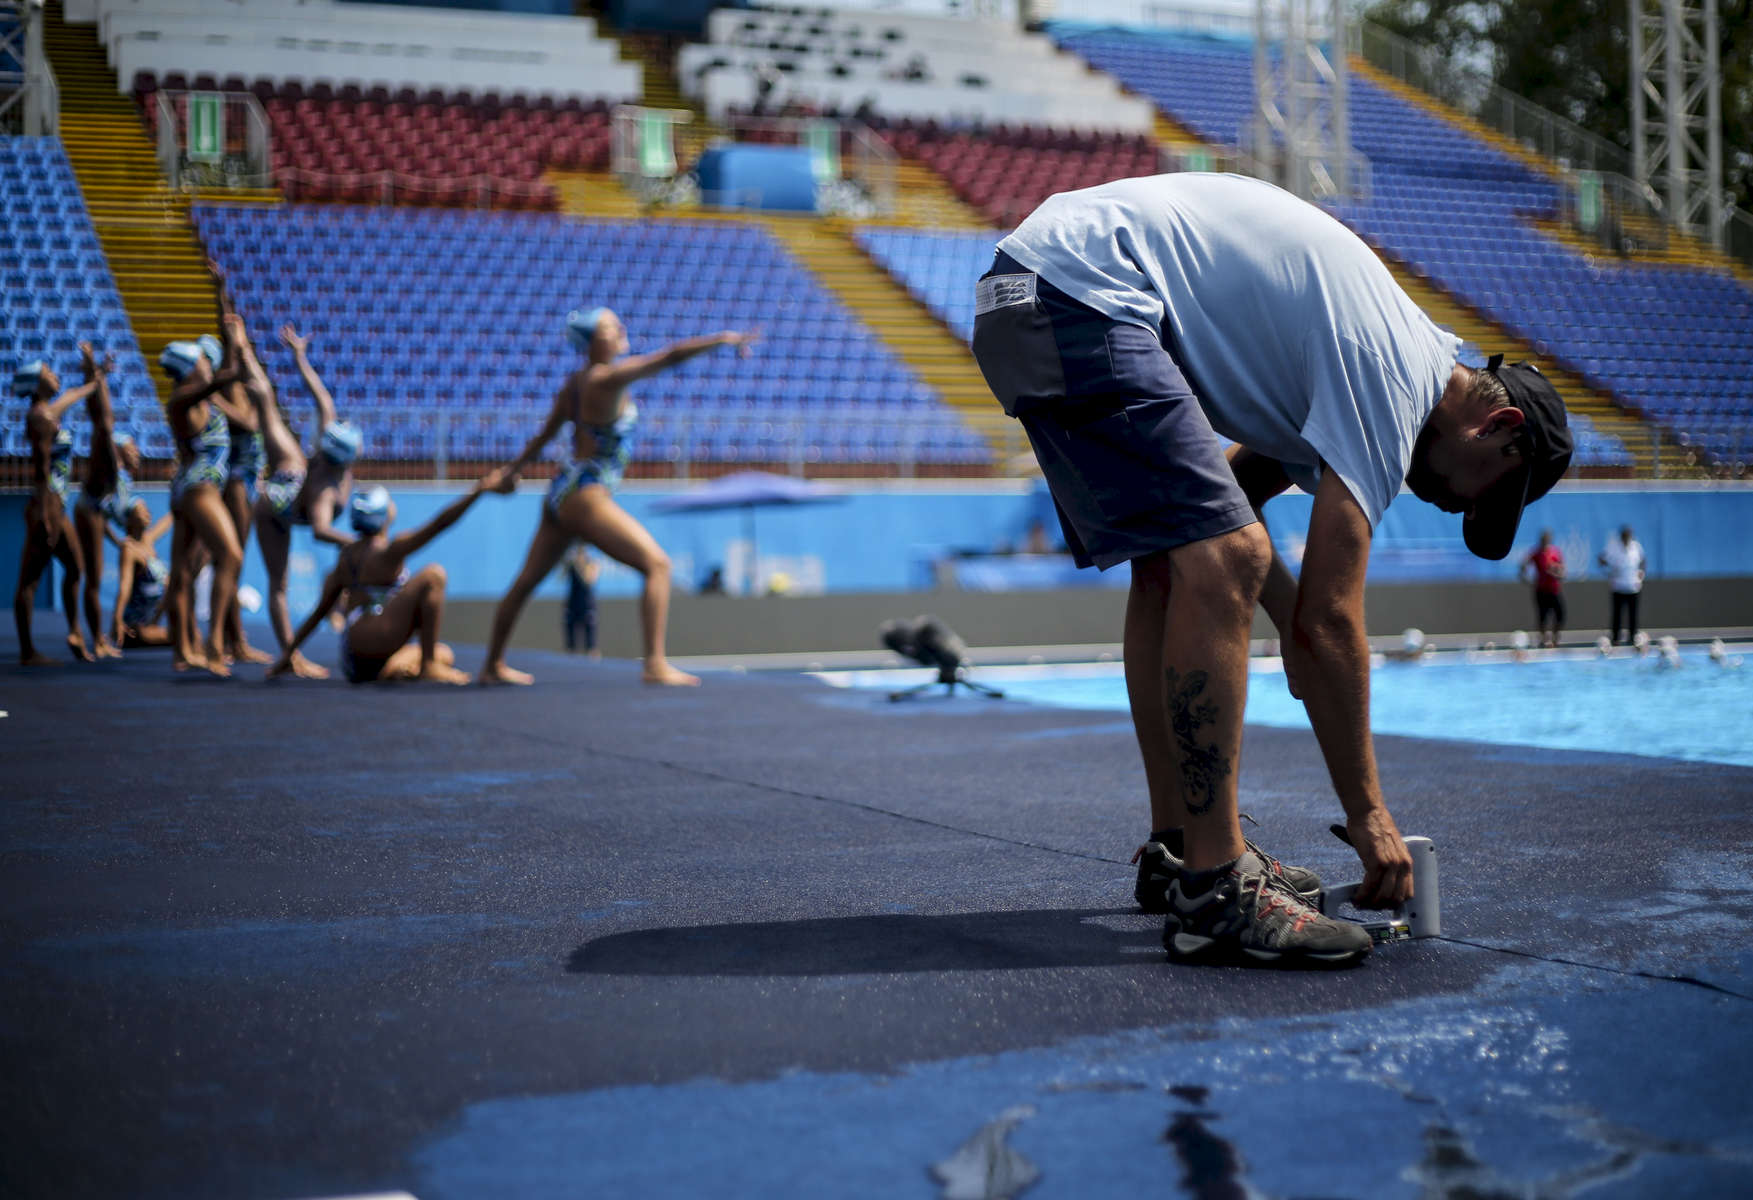 The South African team practices its routine before competing in the Synchronised Swimming Team Free preliminaries while a worker fixes the floor, during the FINA World championships in Budapest, Hungary on July 19, 2017.